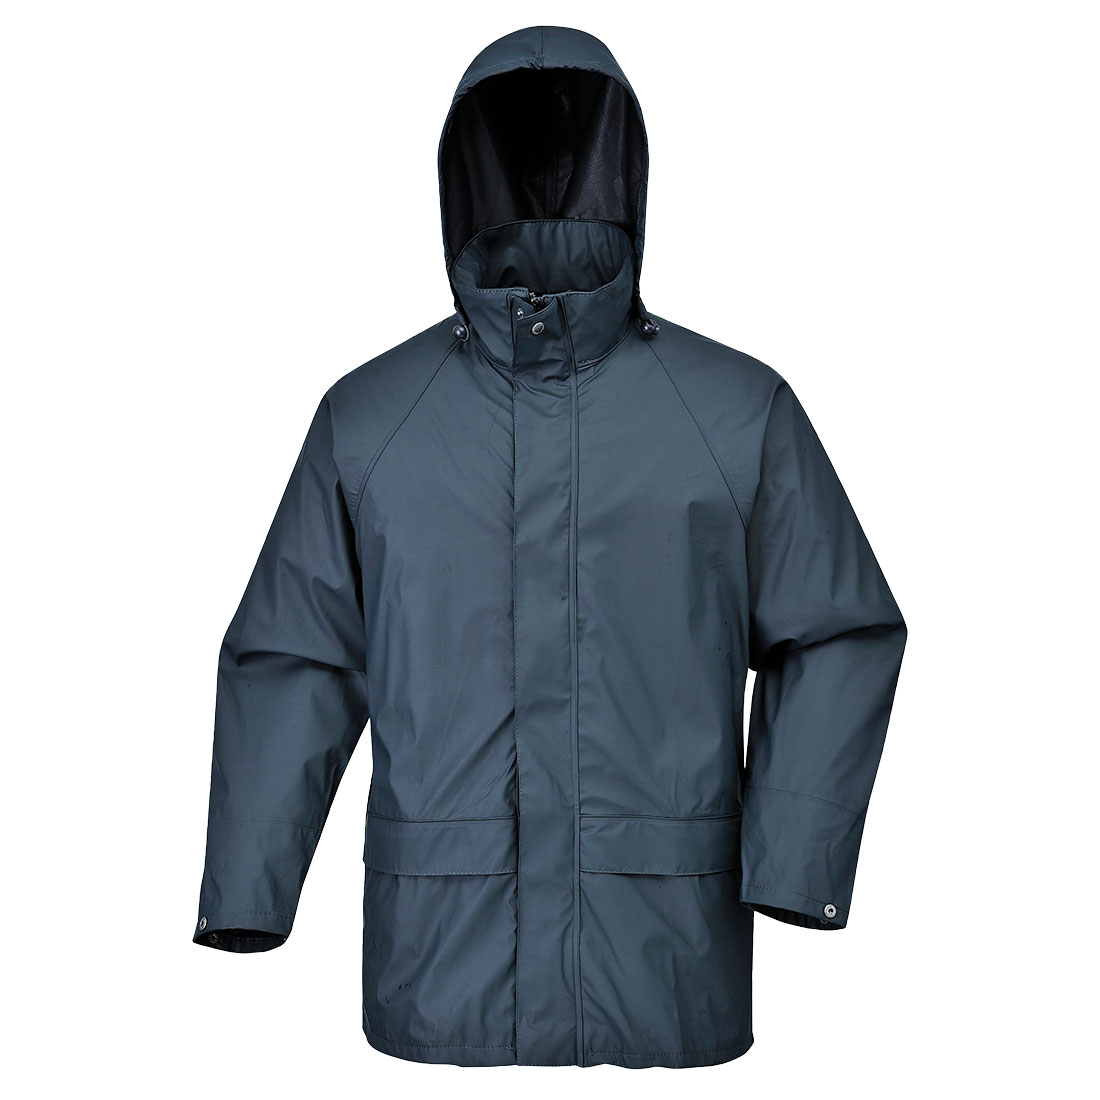 Portwest Sealtex Air Jacket